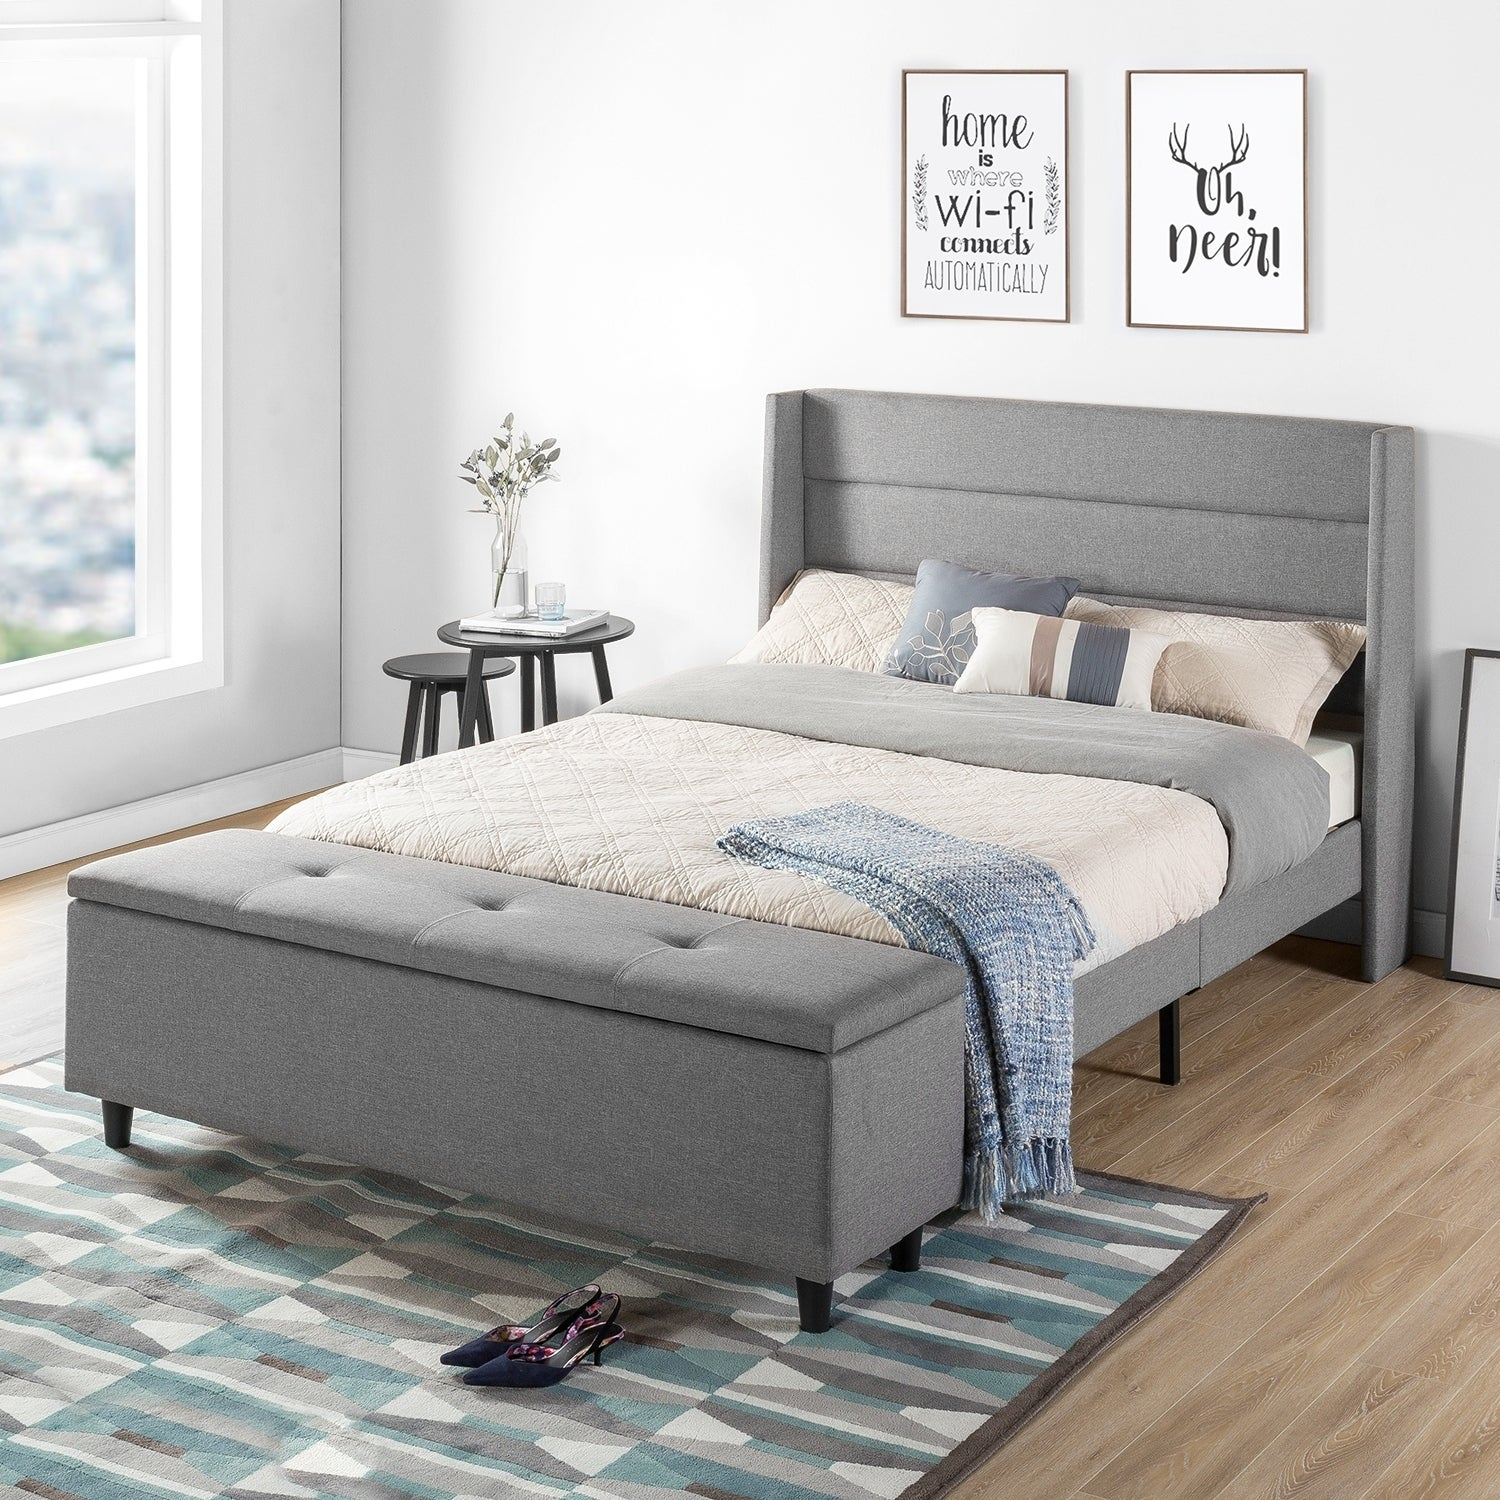 Shop Black Friday Deals On Queen Size Modern Upholstered Platform Bed With Headboard And Storage Ottoman Crown Comfort Overstock 25859040